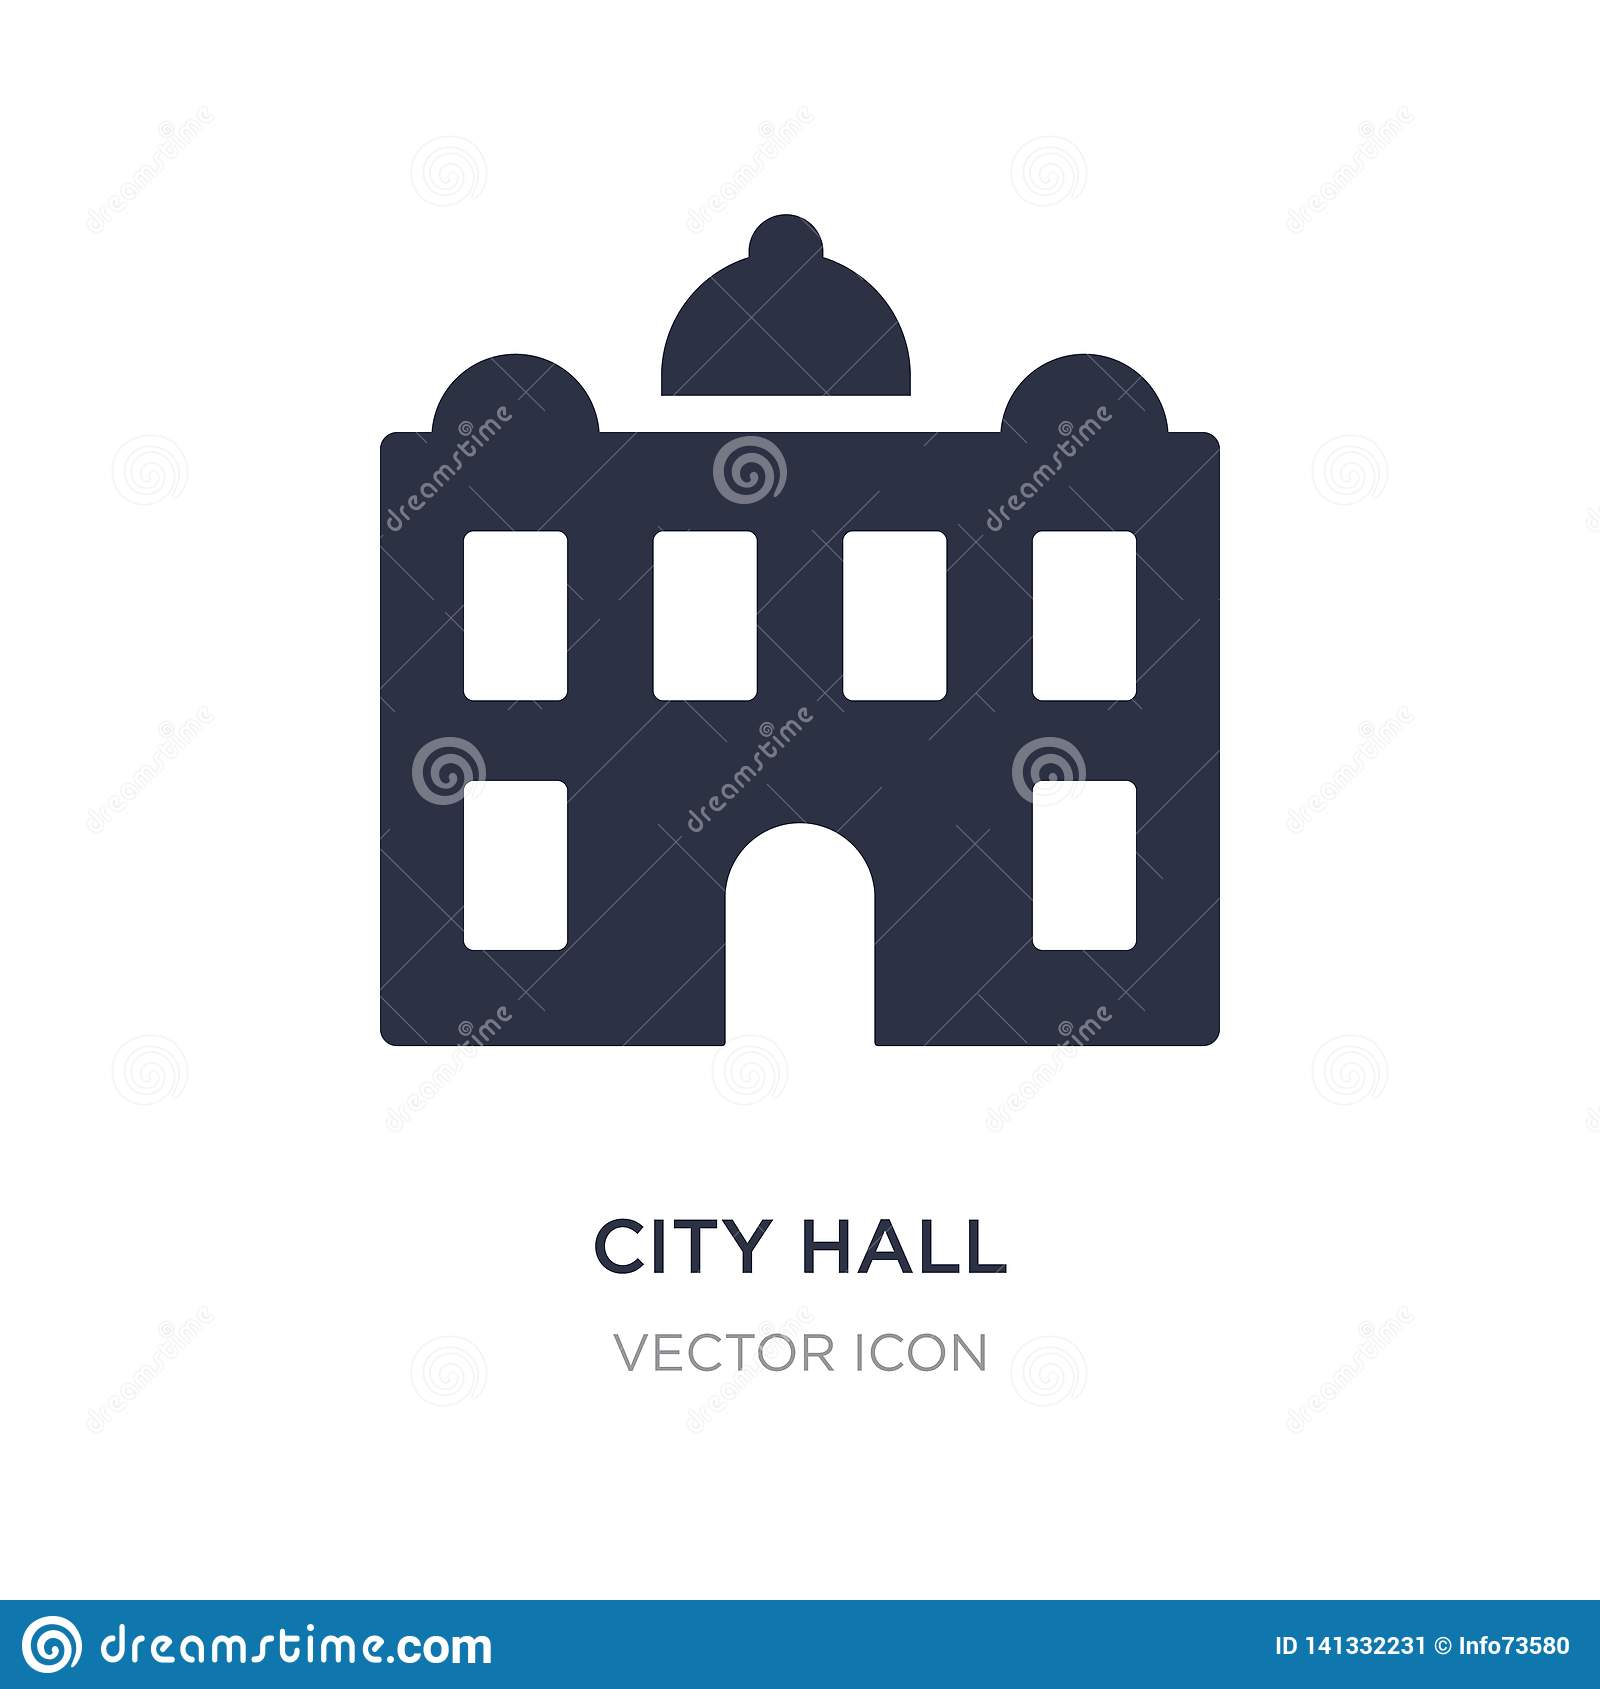 city hall icon on white background. Simple element illustration from City elements concept